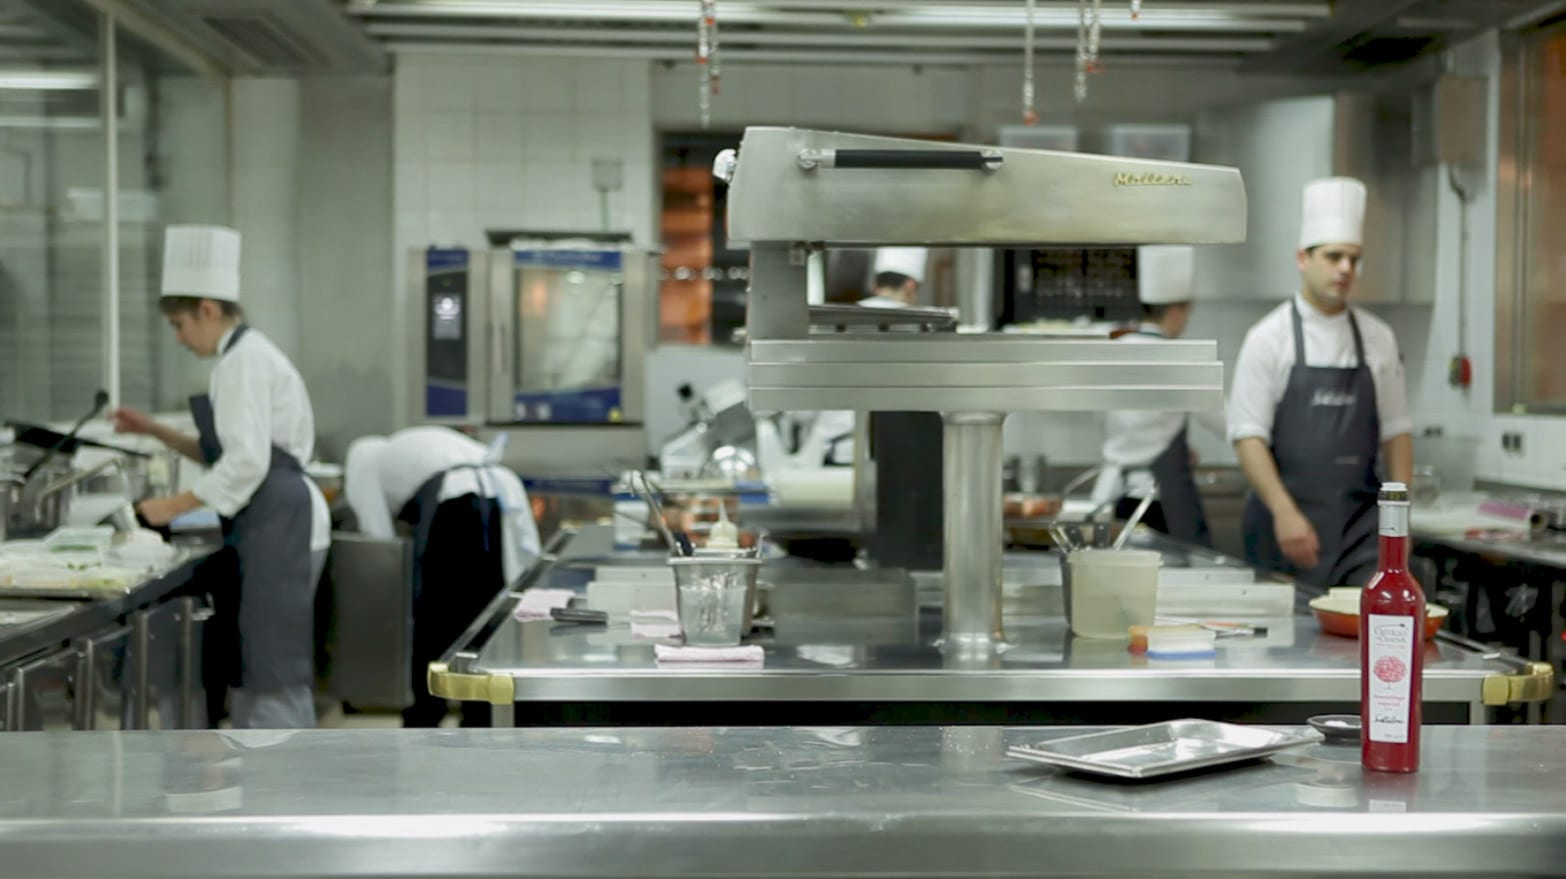 Restaurante Santceloni Madrid, cocina by Electrolux Professional